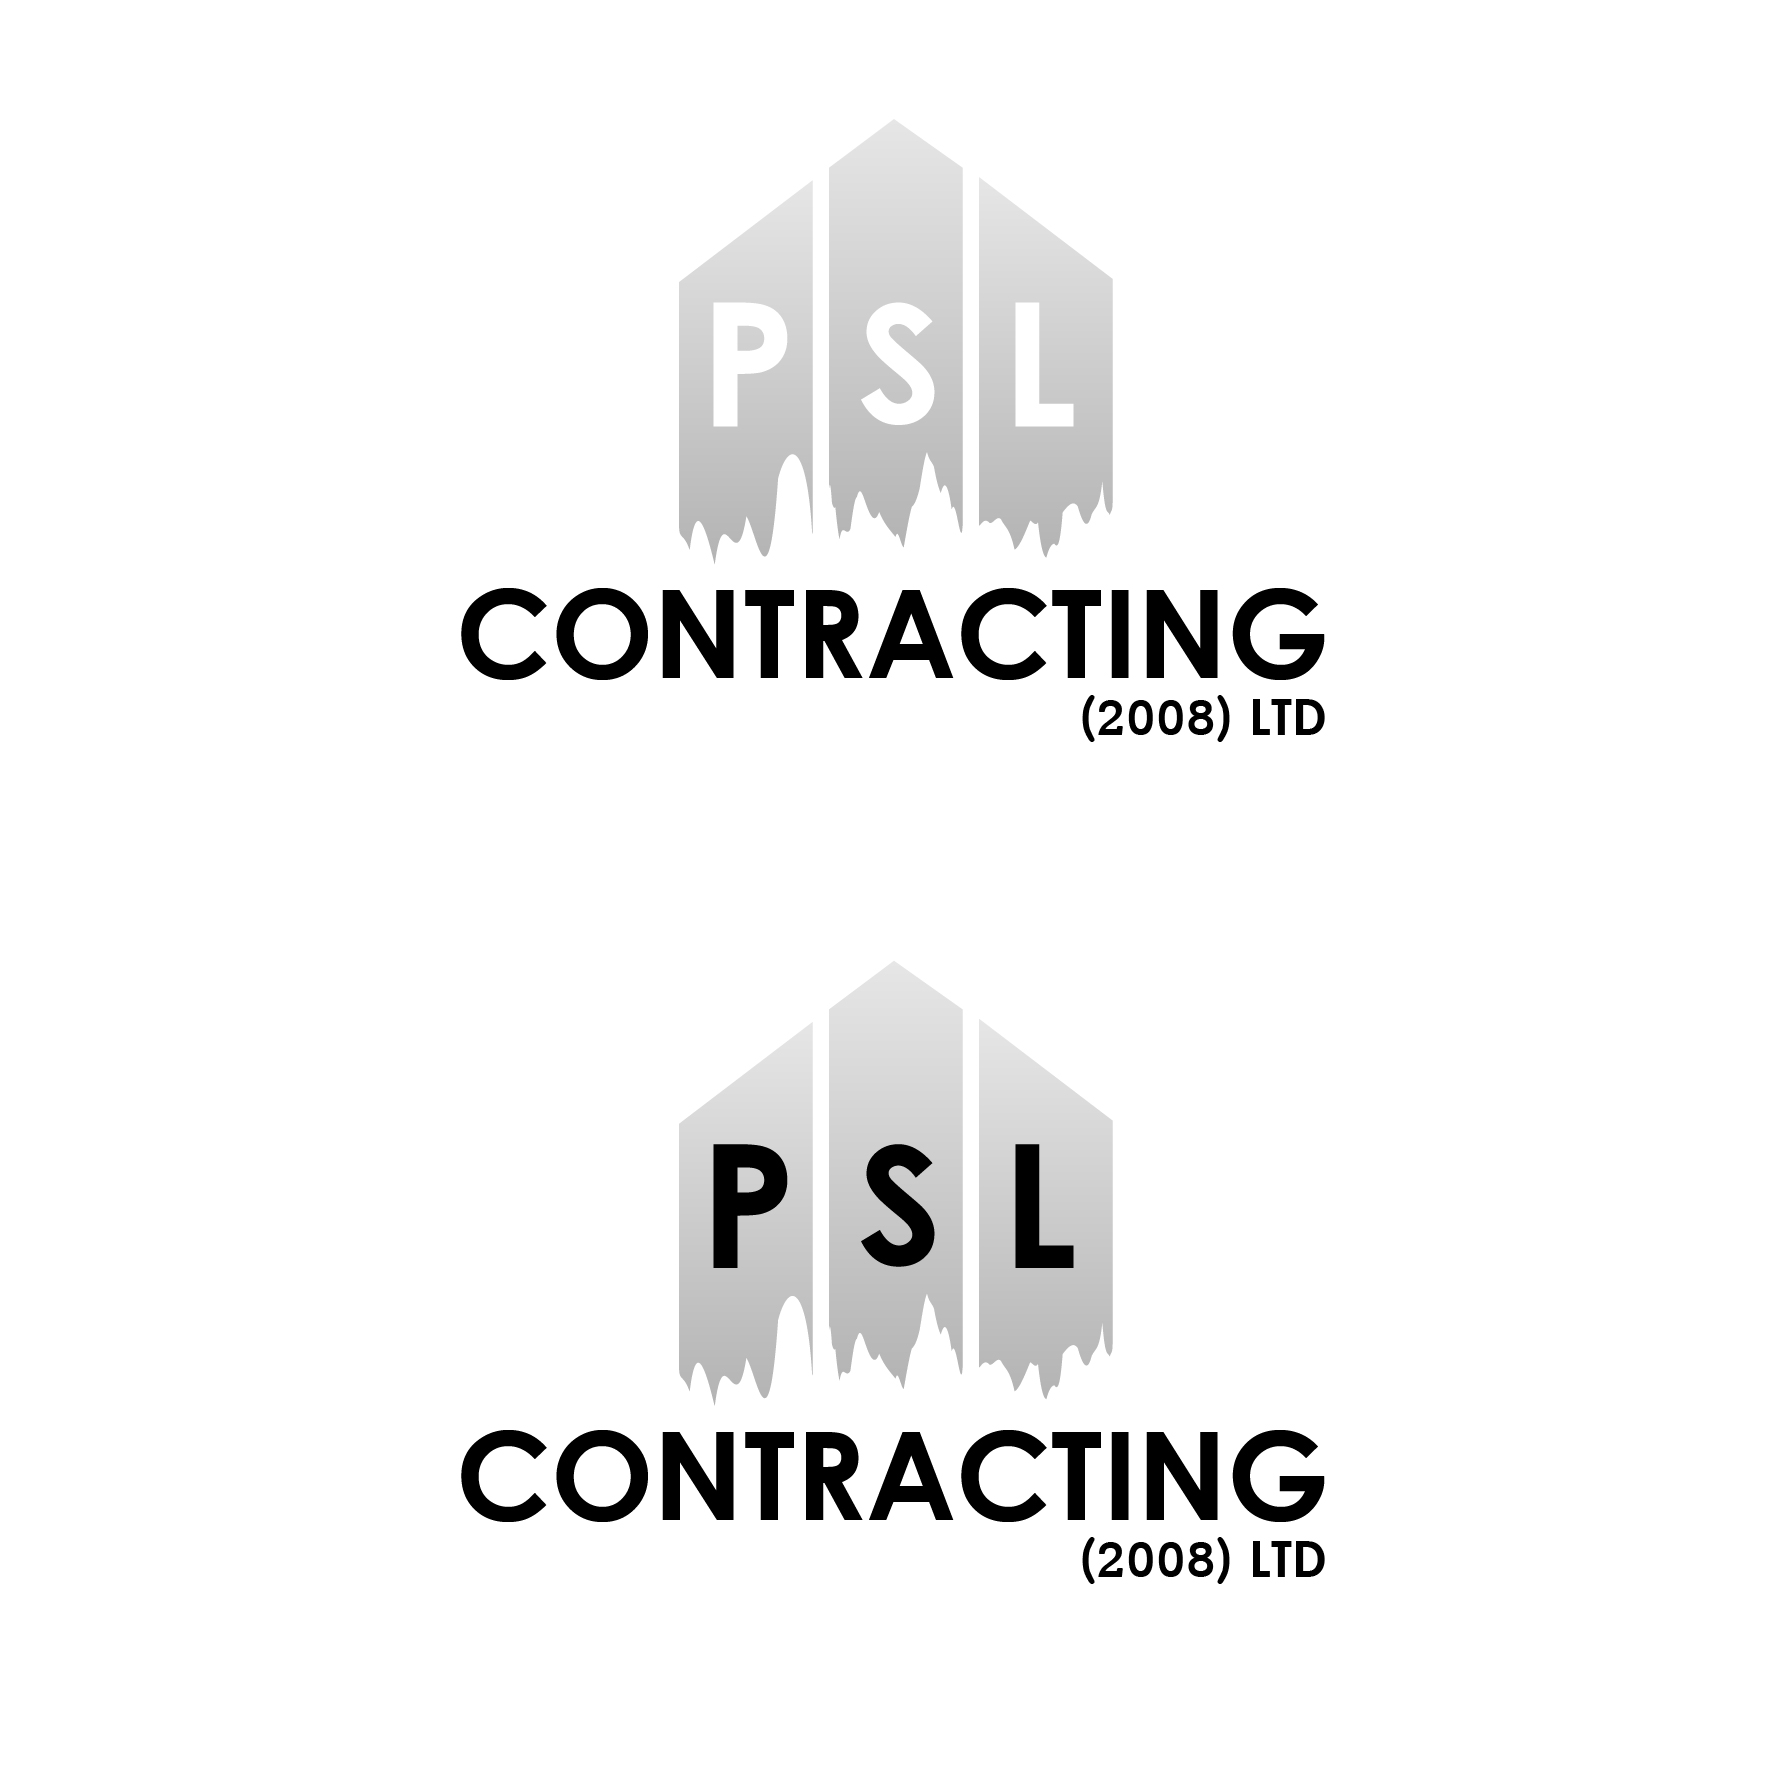 Logo Design by 3draw - Entry No. 6 in the Logo Design Contest PSL Contracting (2008) Ltd. Logo Design.